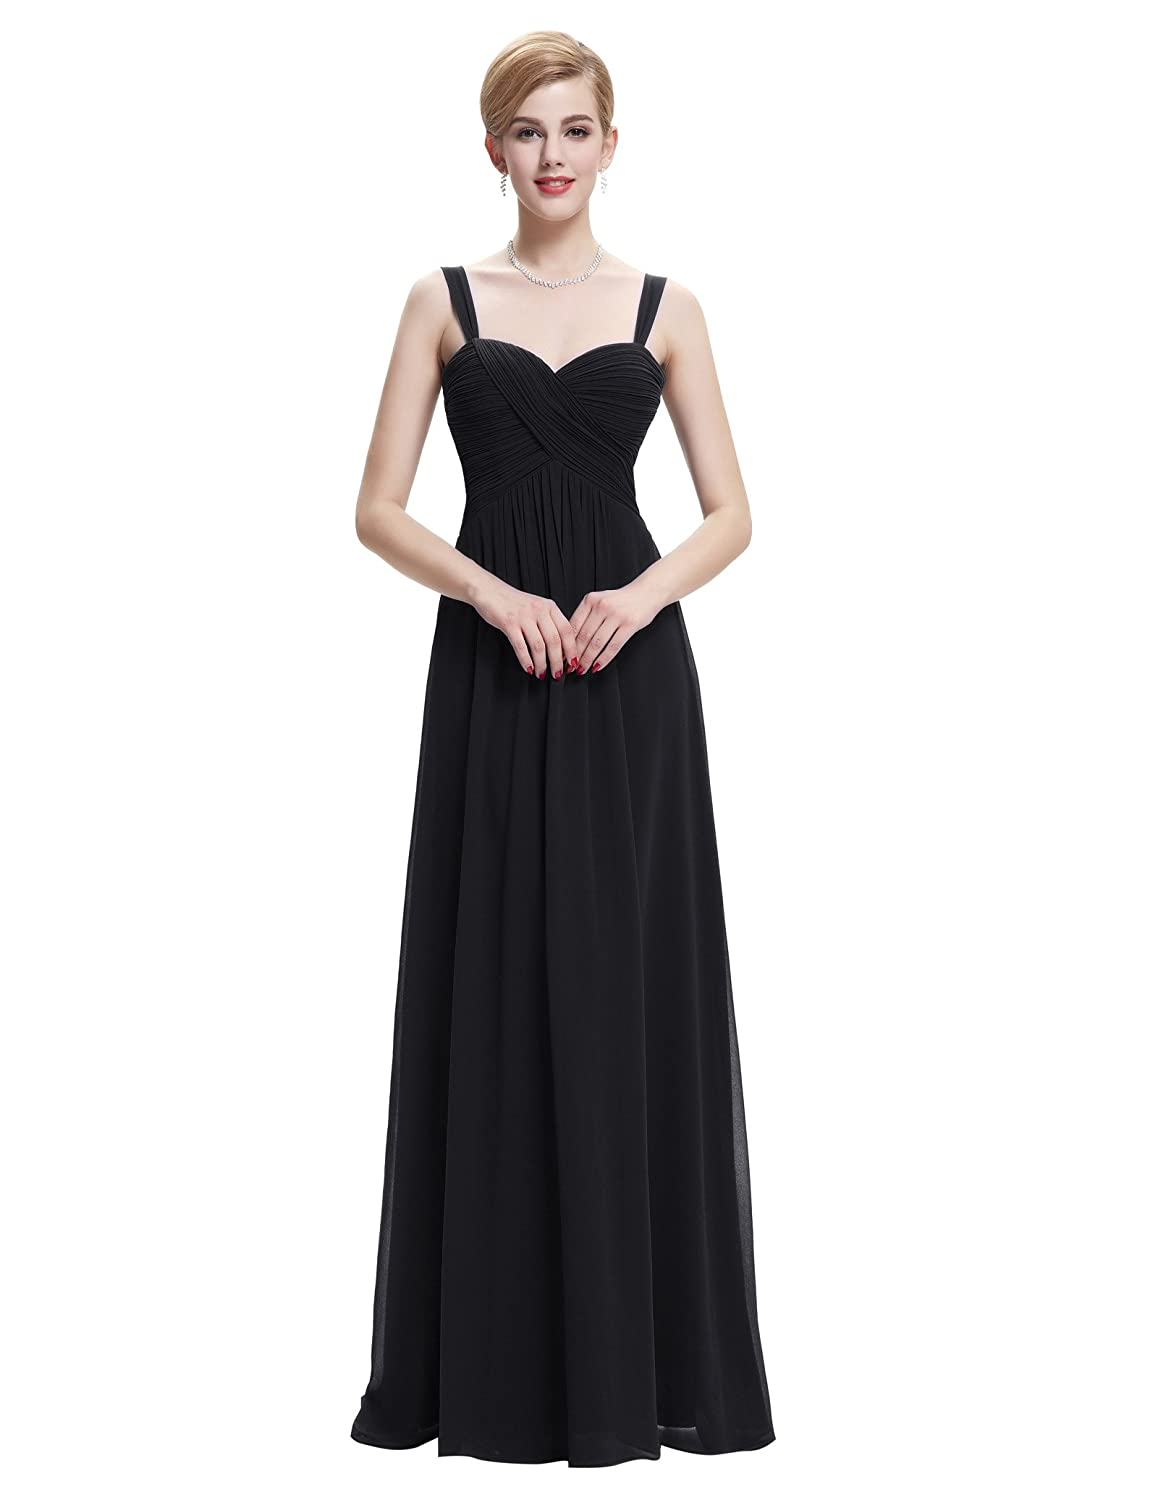 64af092be60 Sleeveless  Sweetheart neckline  Ruching bodice  Empire waist  Full length.  Dress Colors  White Black Blue Dark Purple Dark Green Package Contents 1  Prom ...